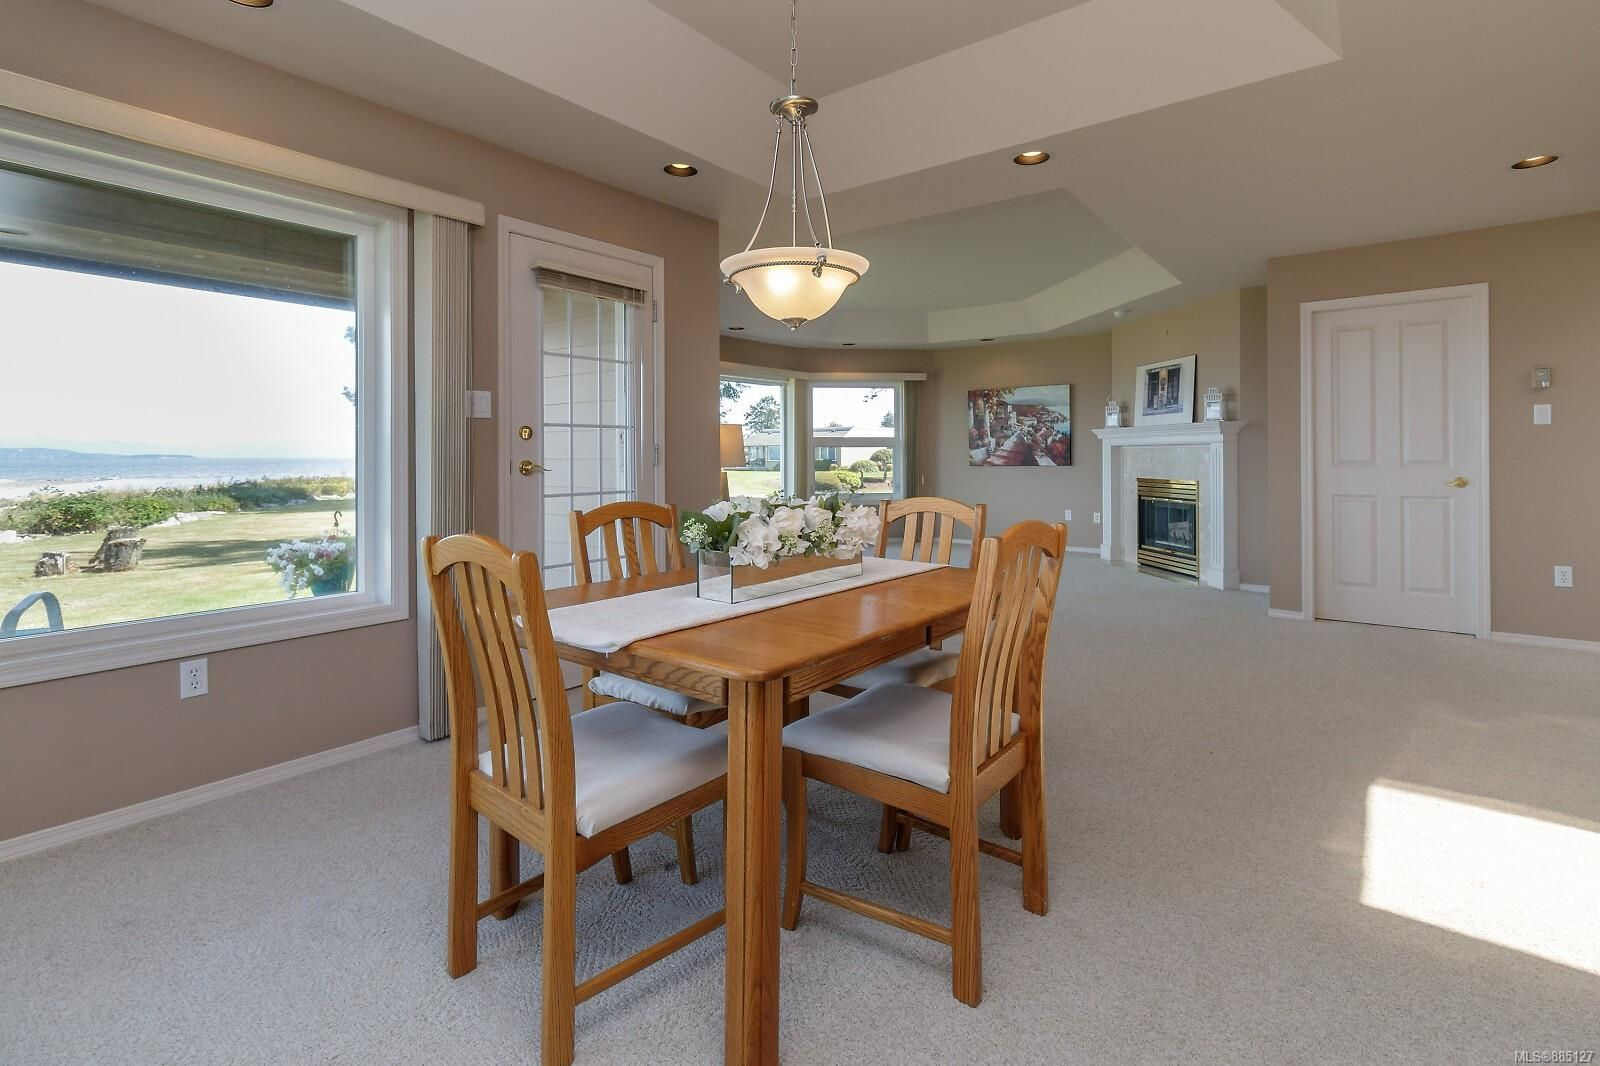 Photo 30: Photos: 26 529 Johnstone Rd in : PQ French Creek Row/Townhouse for sale (Parksville/Qualicum)  : MLS®# 885127